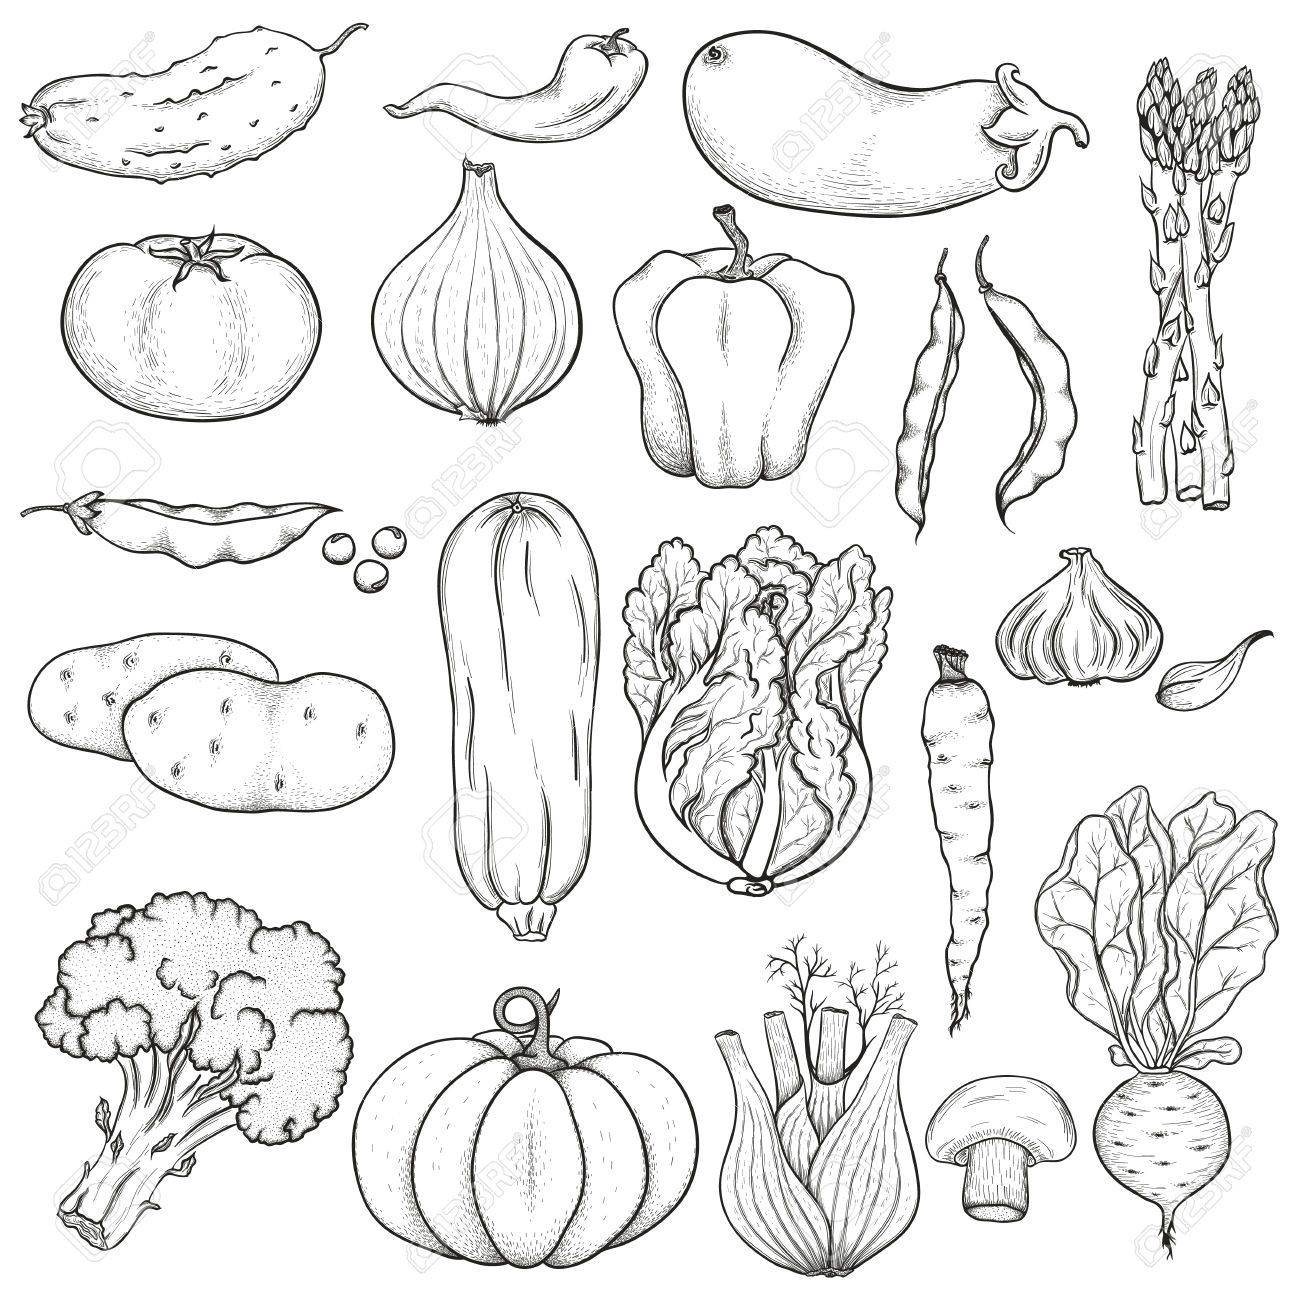 clipart vegetables black and white google search mfm